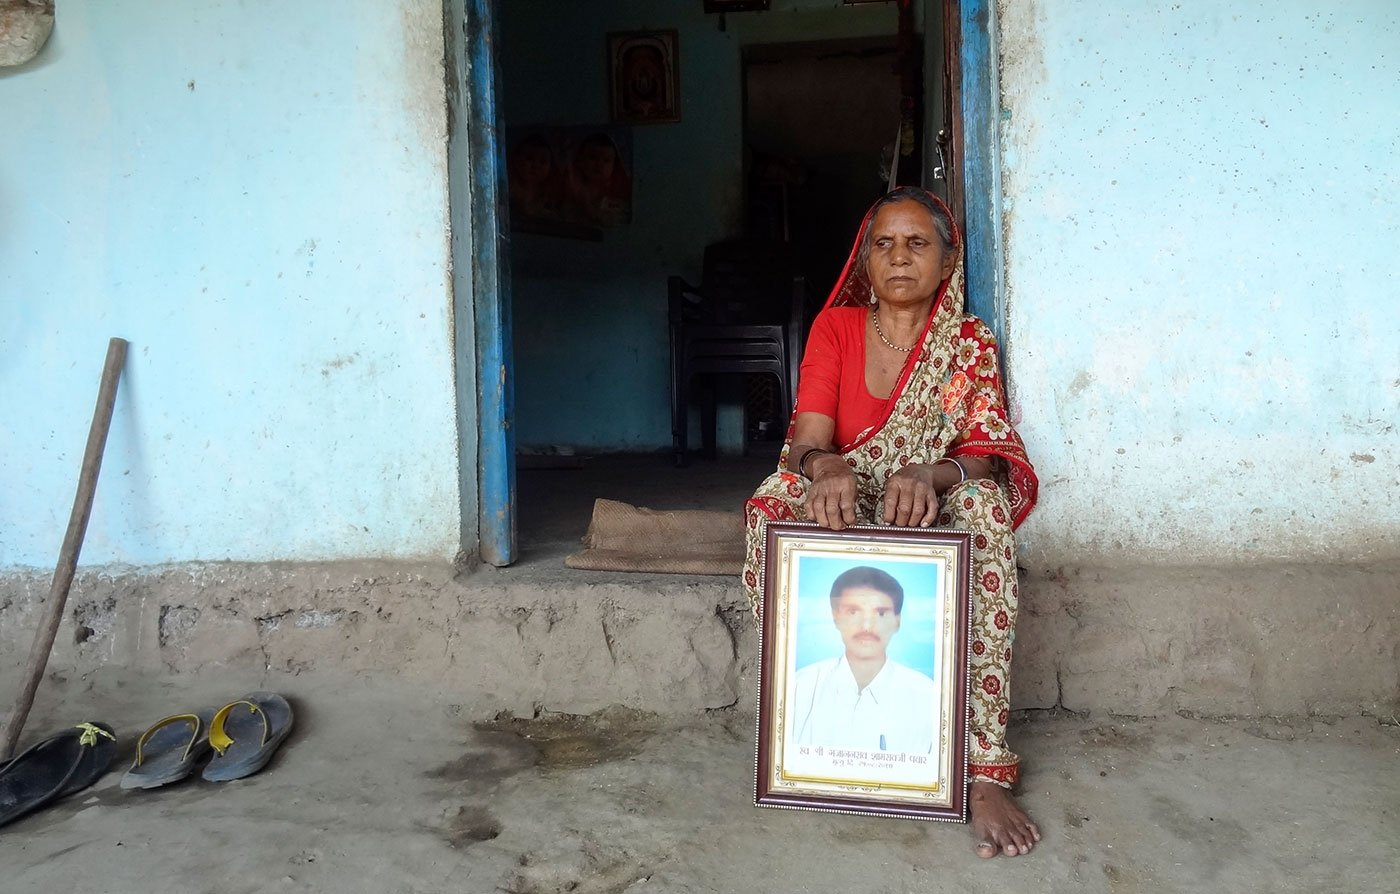 Indukala Pawar lost her husband Shyamrao early this year, but she says he died in tension after the couple lost their elder son Gajanan (framed photo) last year in T1's attack in Sarati